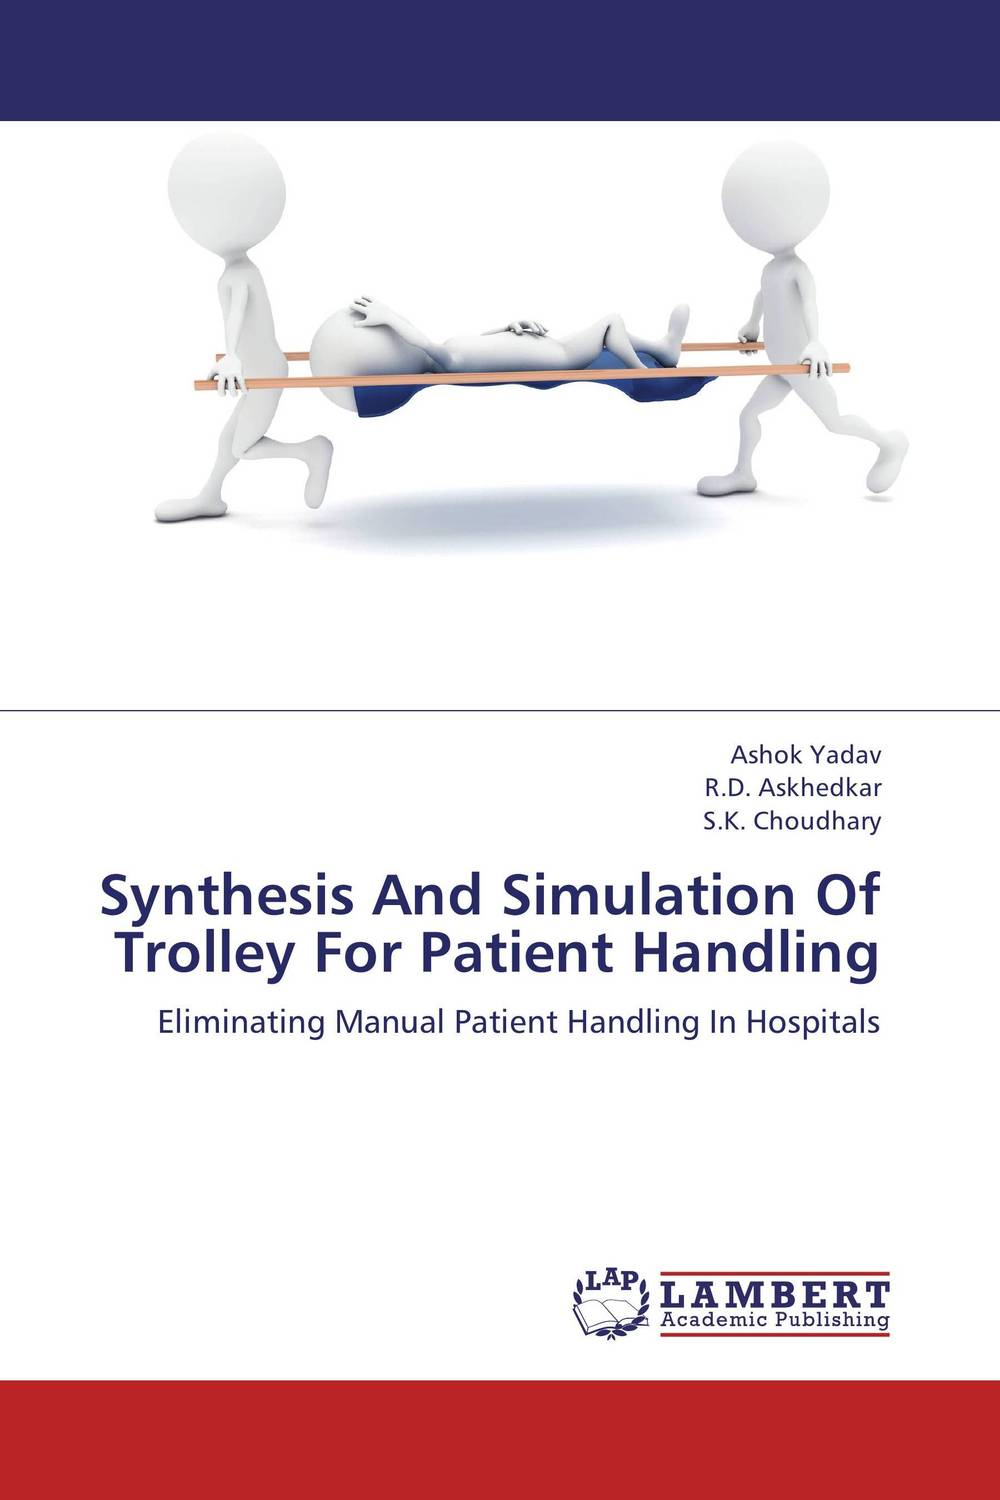 Synthesis And Simulation Of Trolley For Patient Handling